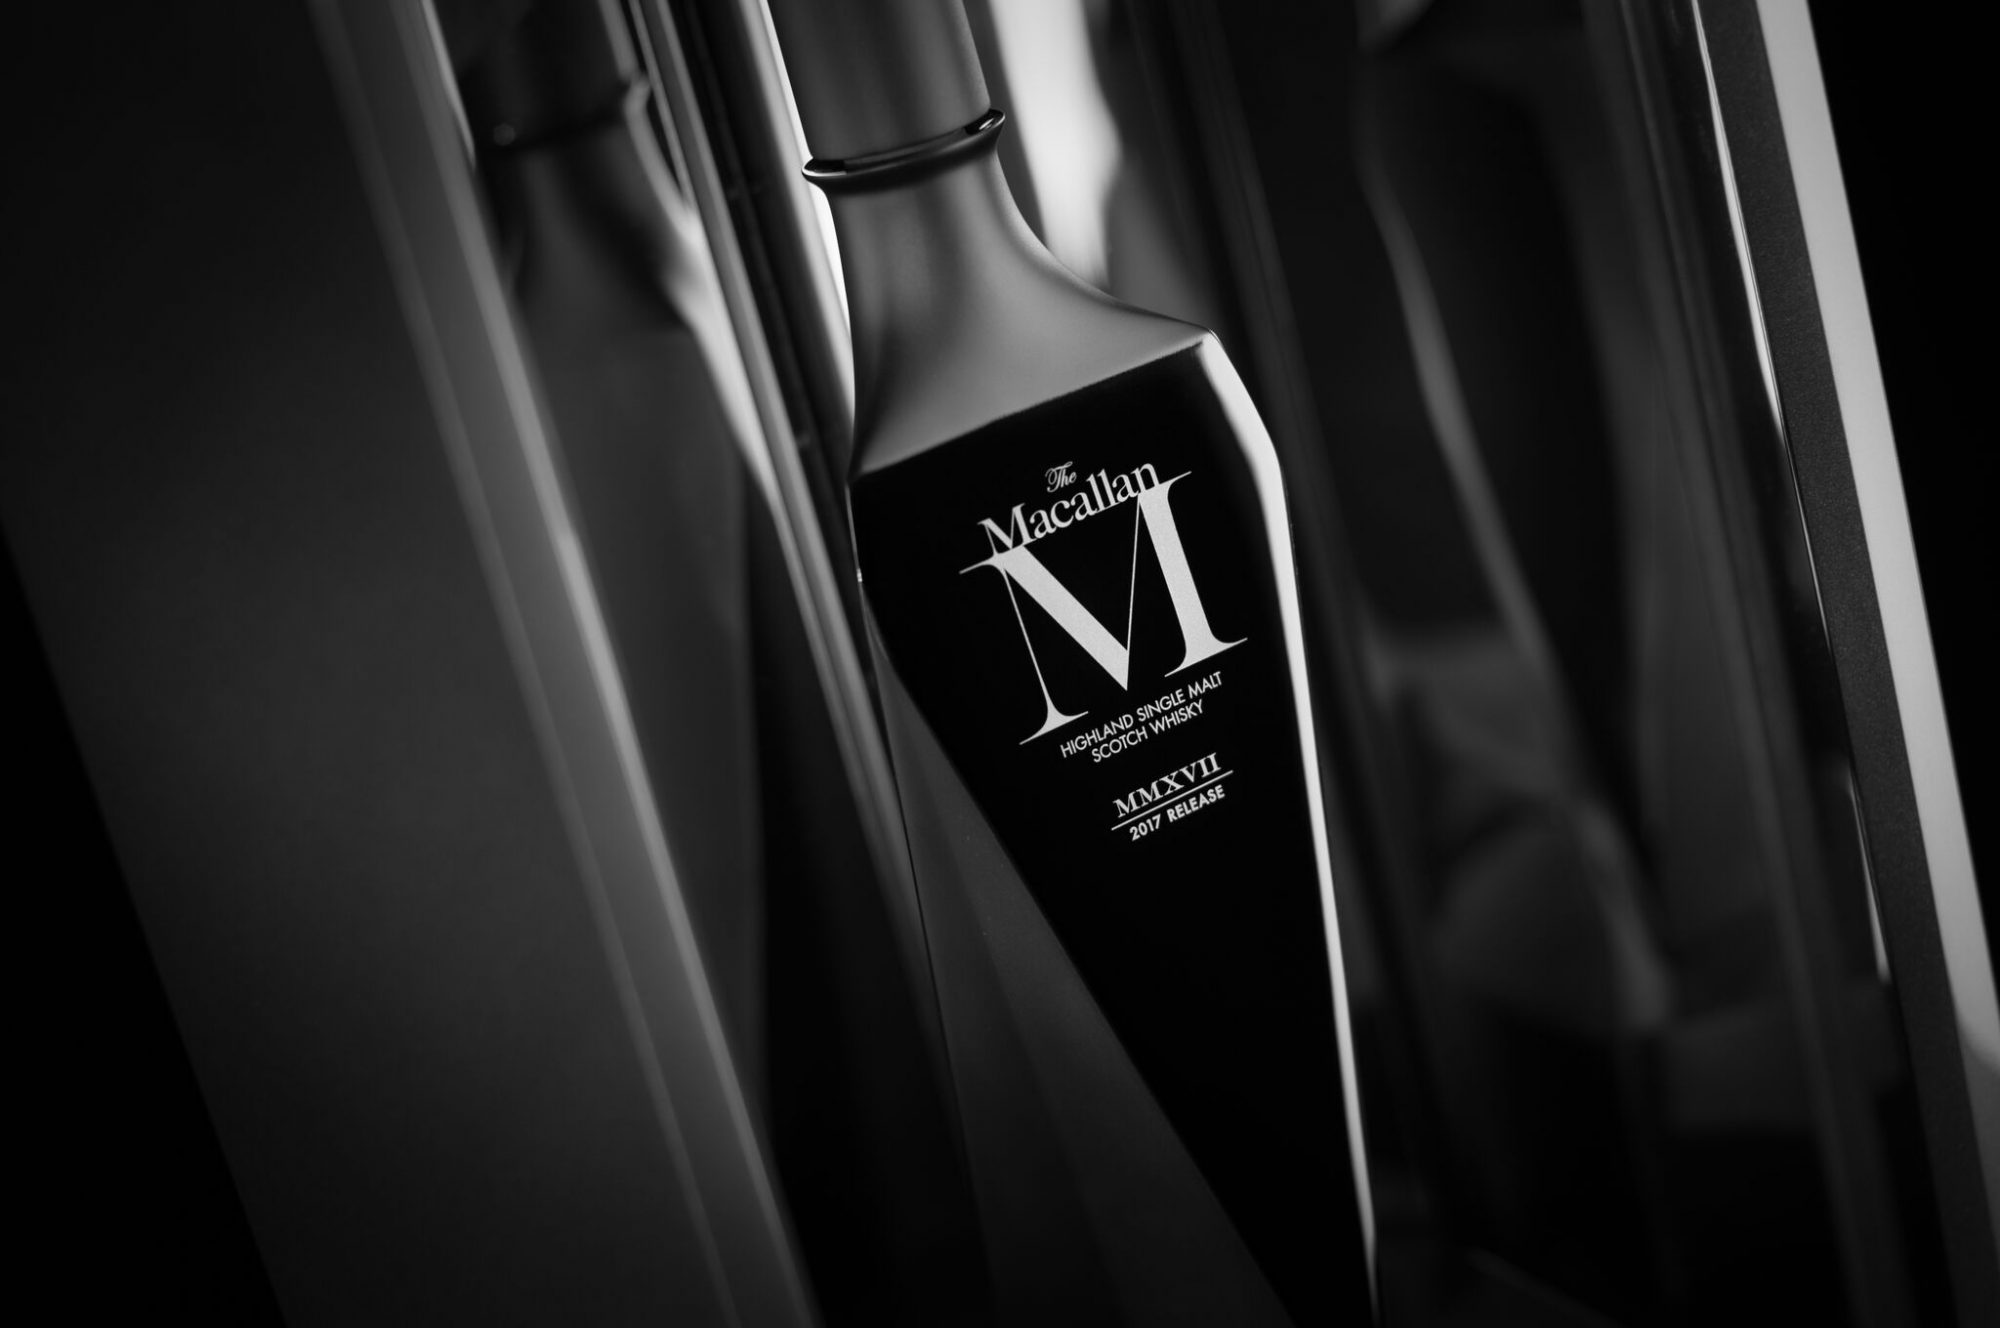 Macallan's Latest $7,000 Whisky Will Be Sold in Numbered Bottles